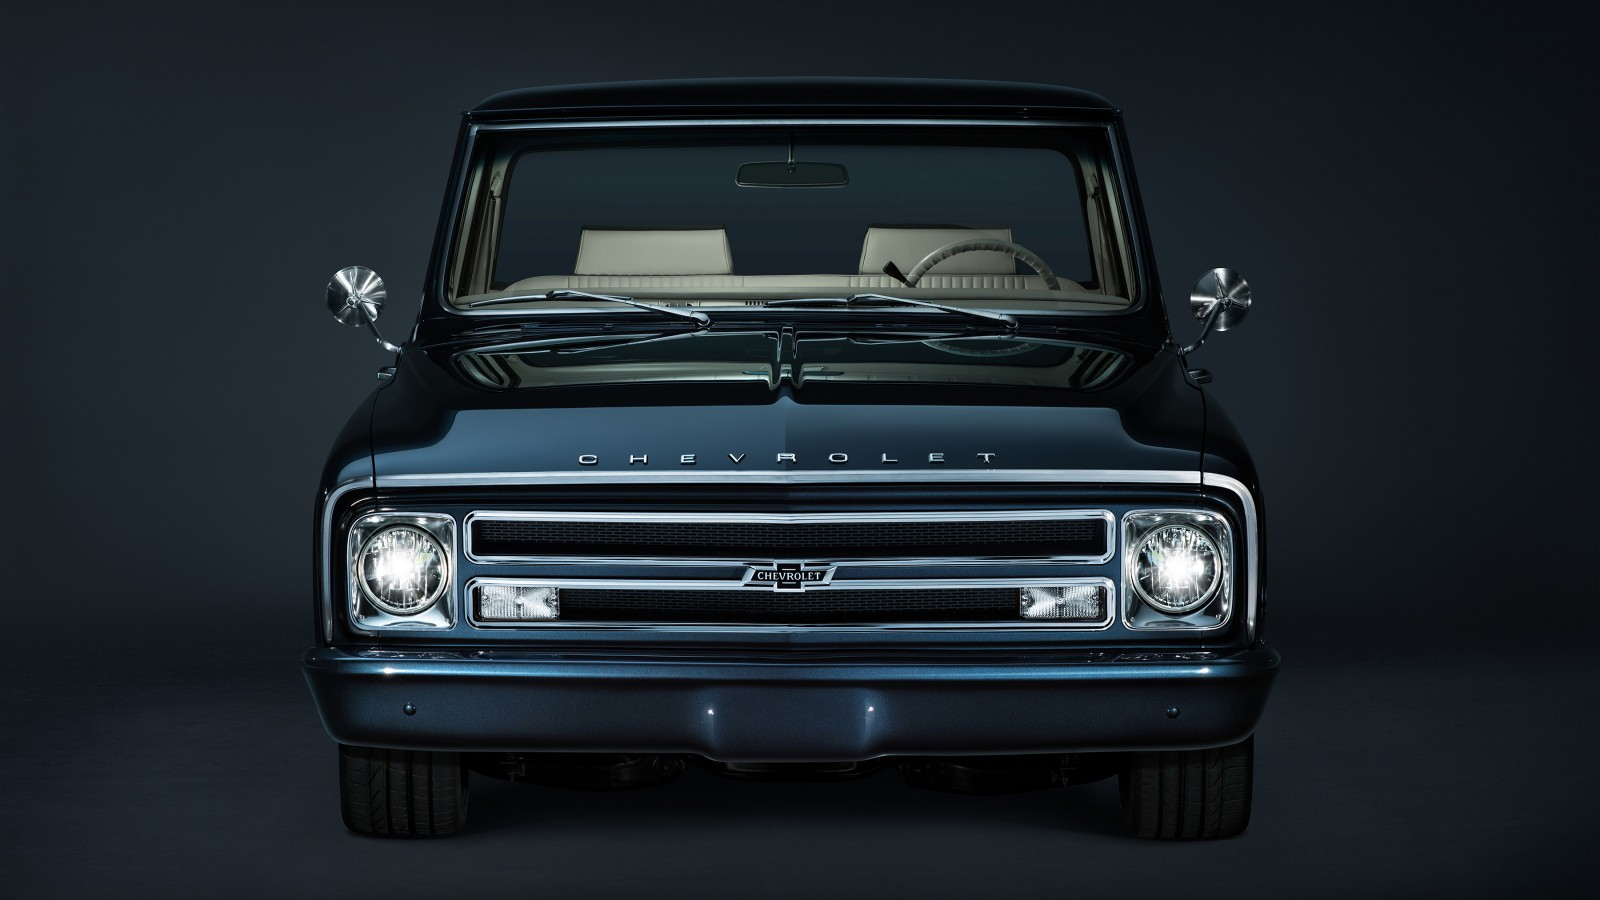 1967 Chevrolet C10 Centennial SEMA Truck Wallpaper | HD Car Wallpapers | ID #8741